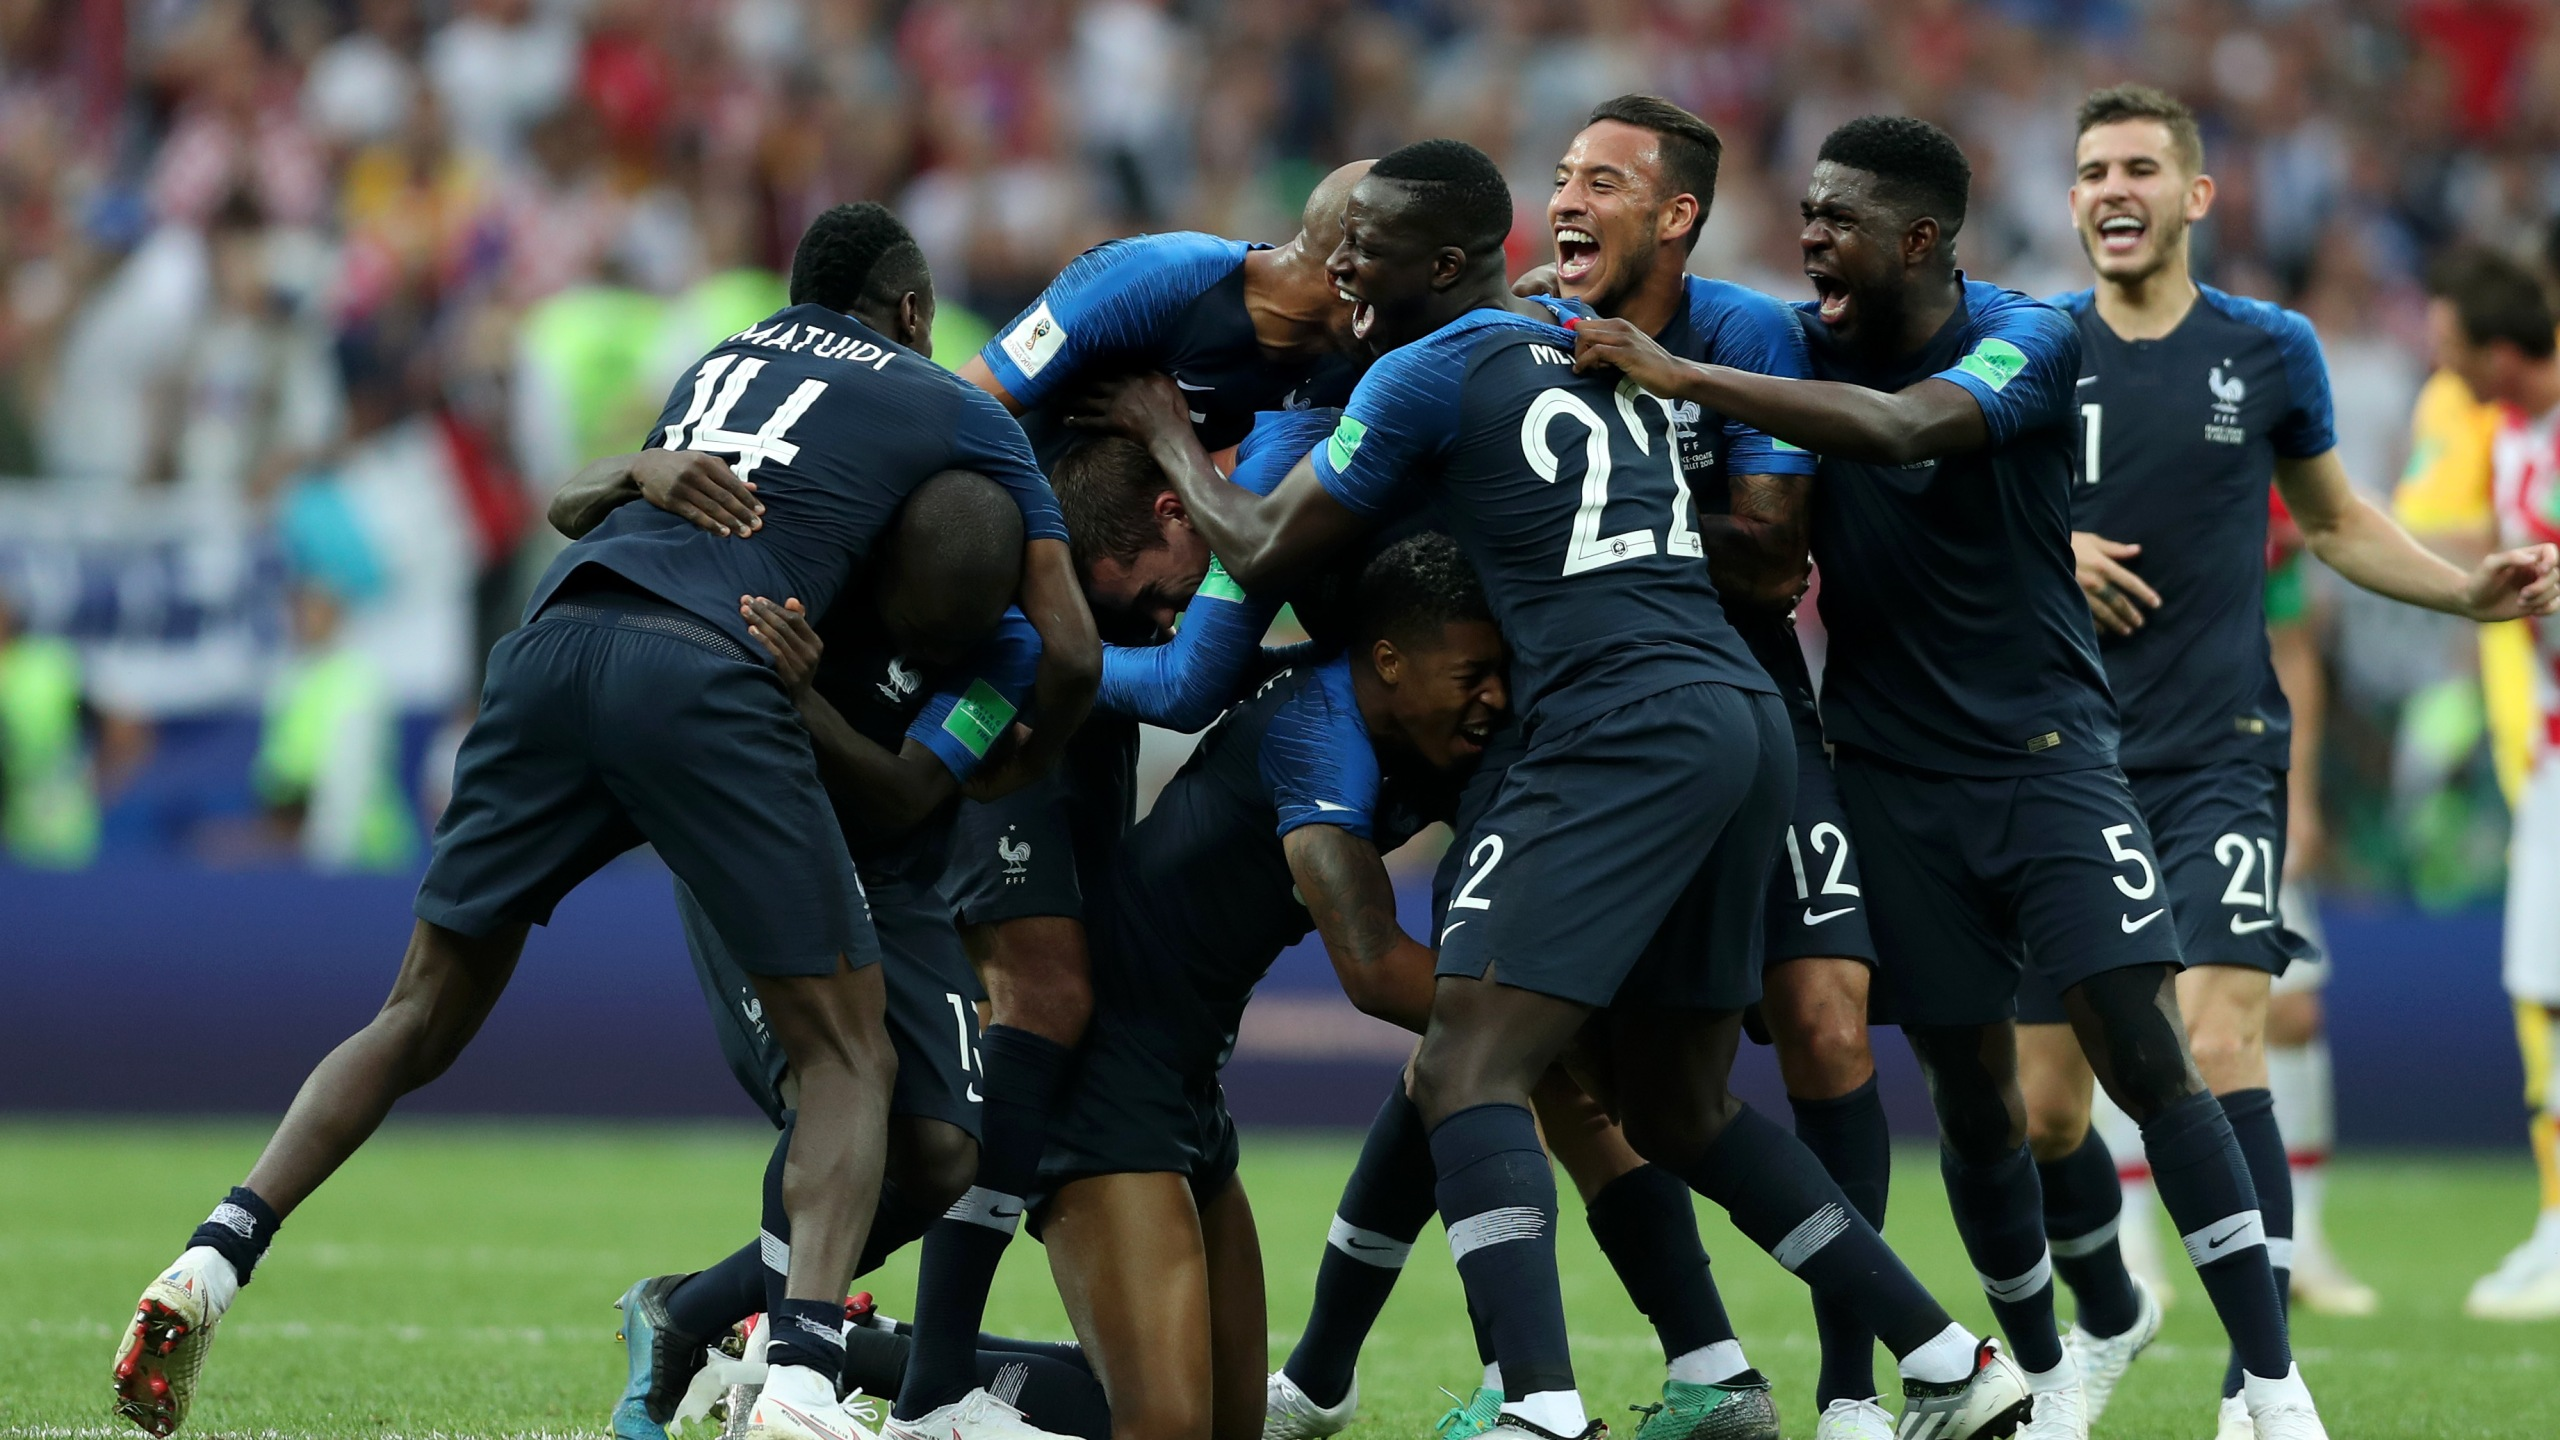 France players celebrate following their victory in the 2018 FIFA World Cup Final between France and Croatia at Luzhniki Stadium on July 15, 2018 in Moscow, Russia. (Credit: Clive Rose/Getty Images)